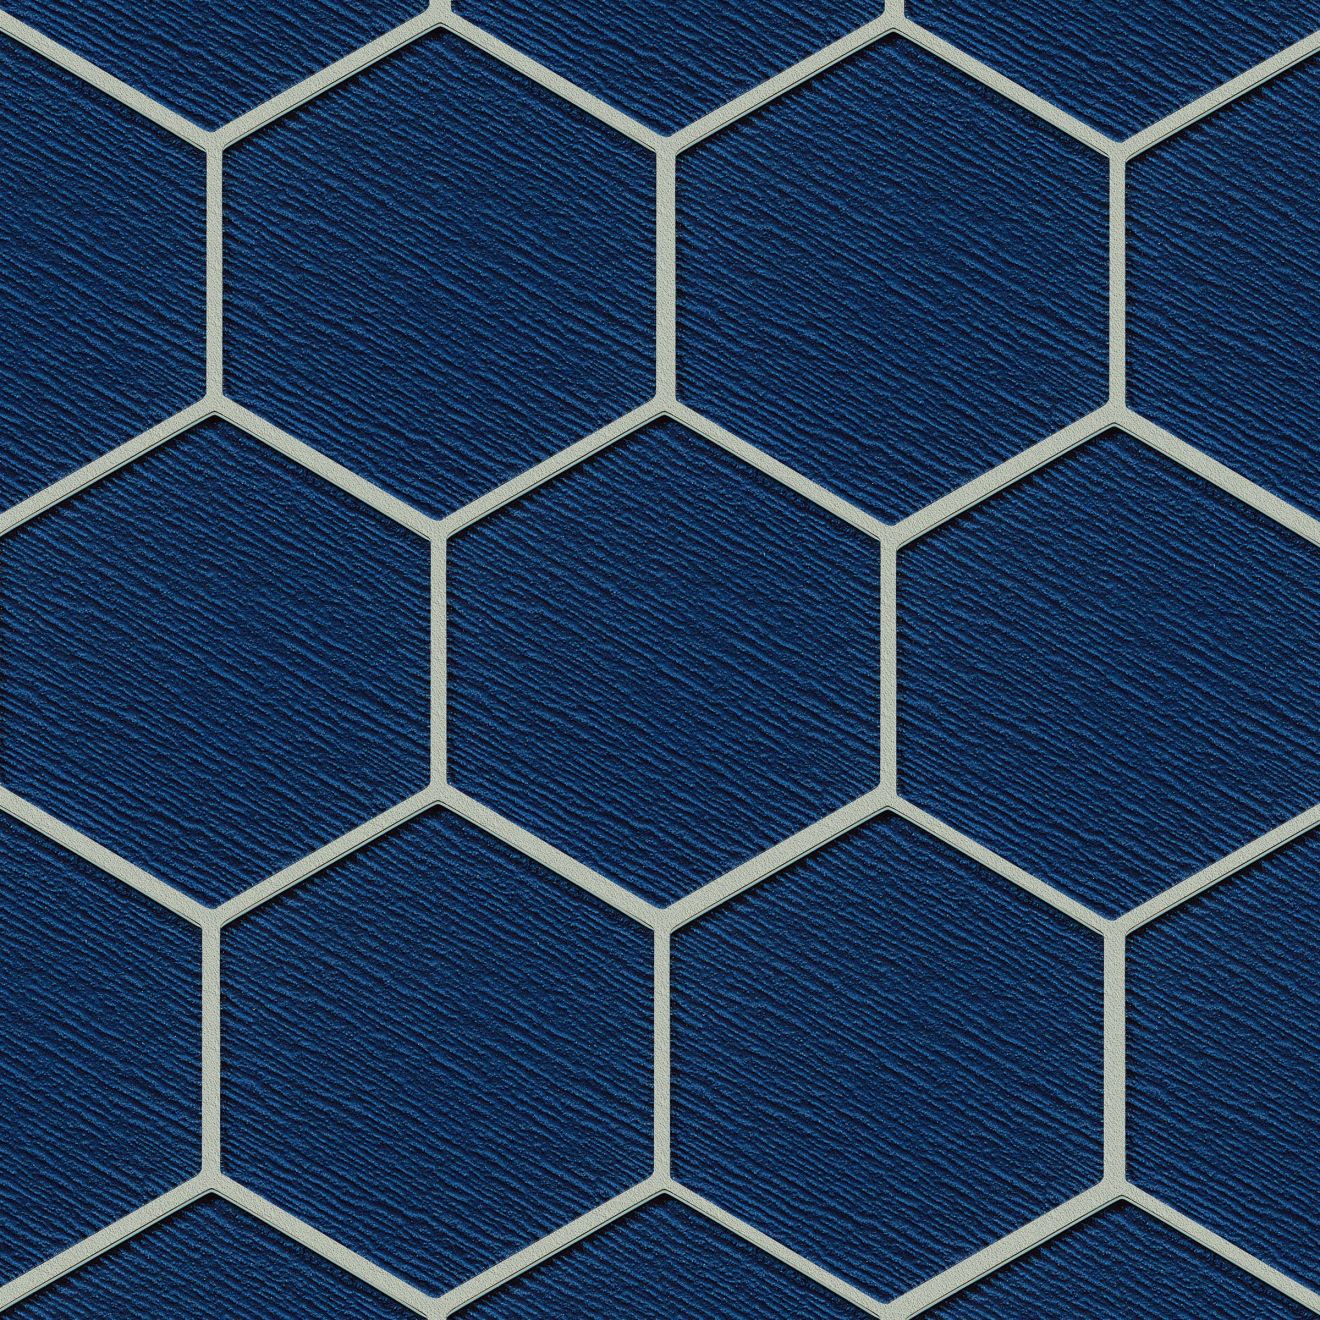 """Verve 4-7/8"""" x 5-5/8"""" Wall Mosaic in Starry Night"""